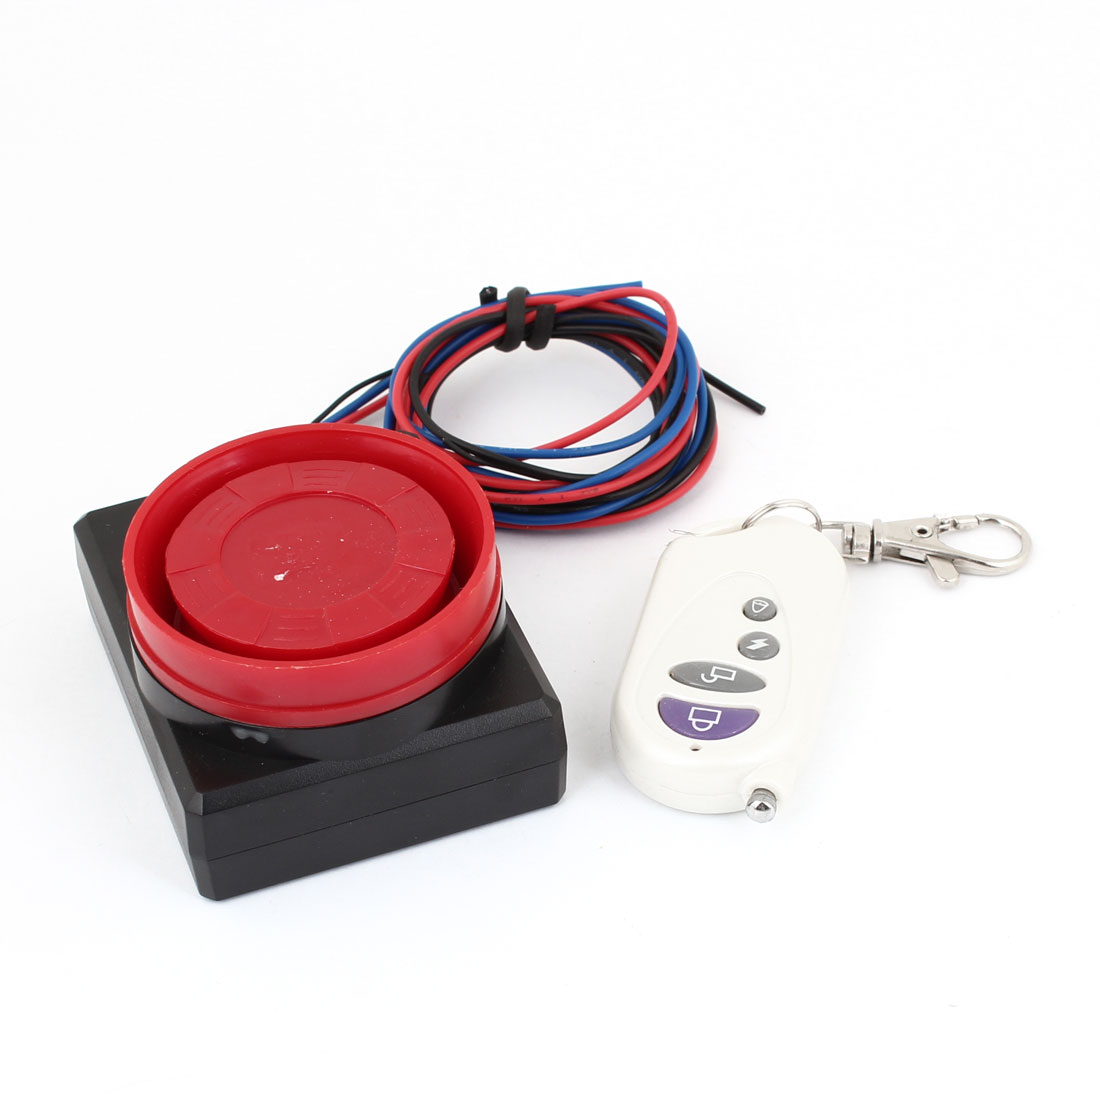 Motorcycle Motorbike Safety Sensor Vibration Alarm w Remote Control